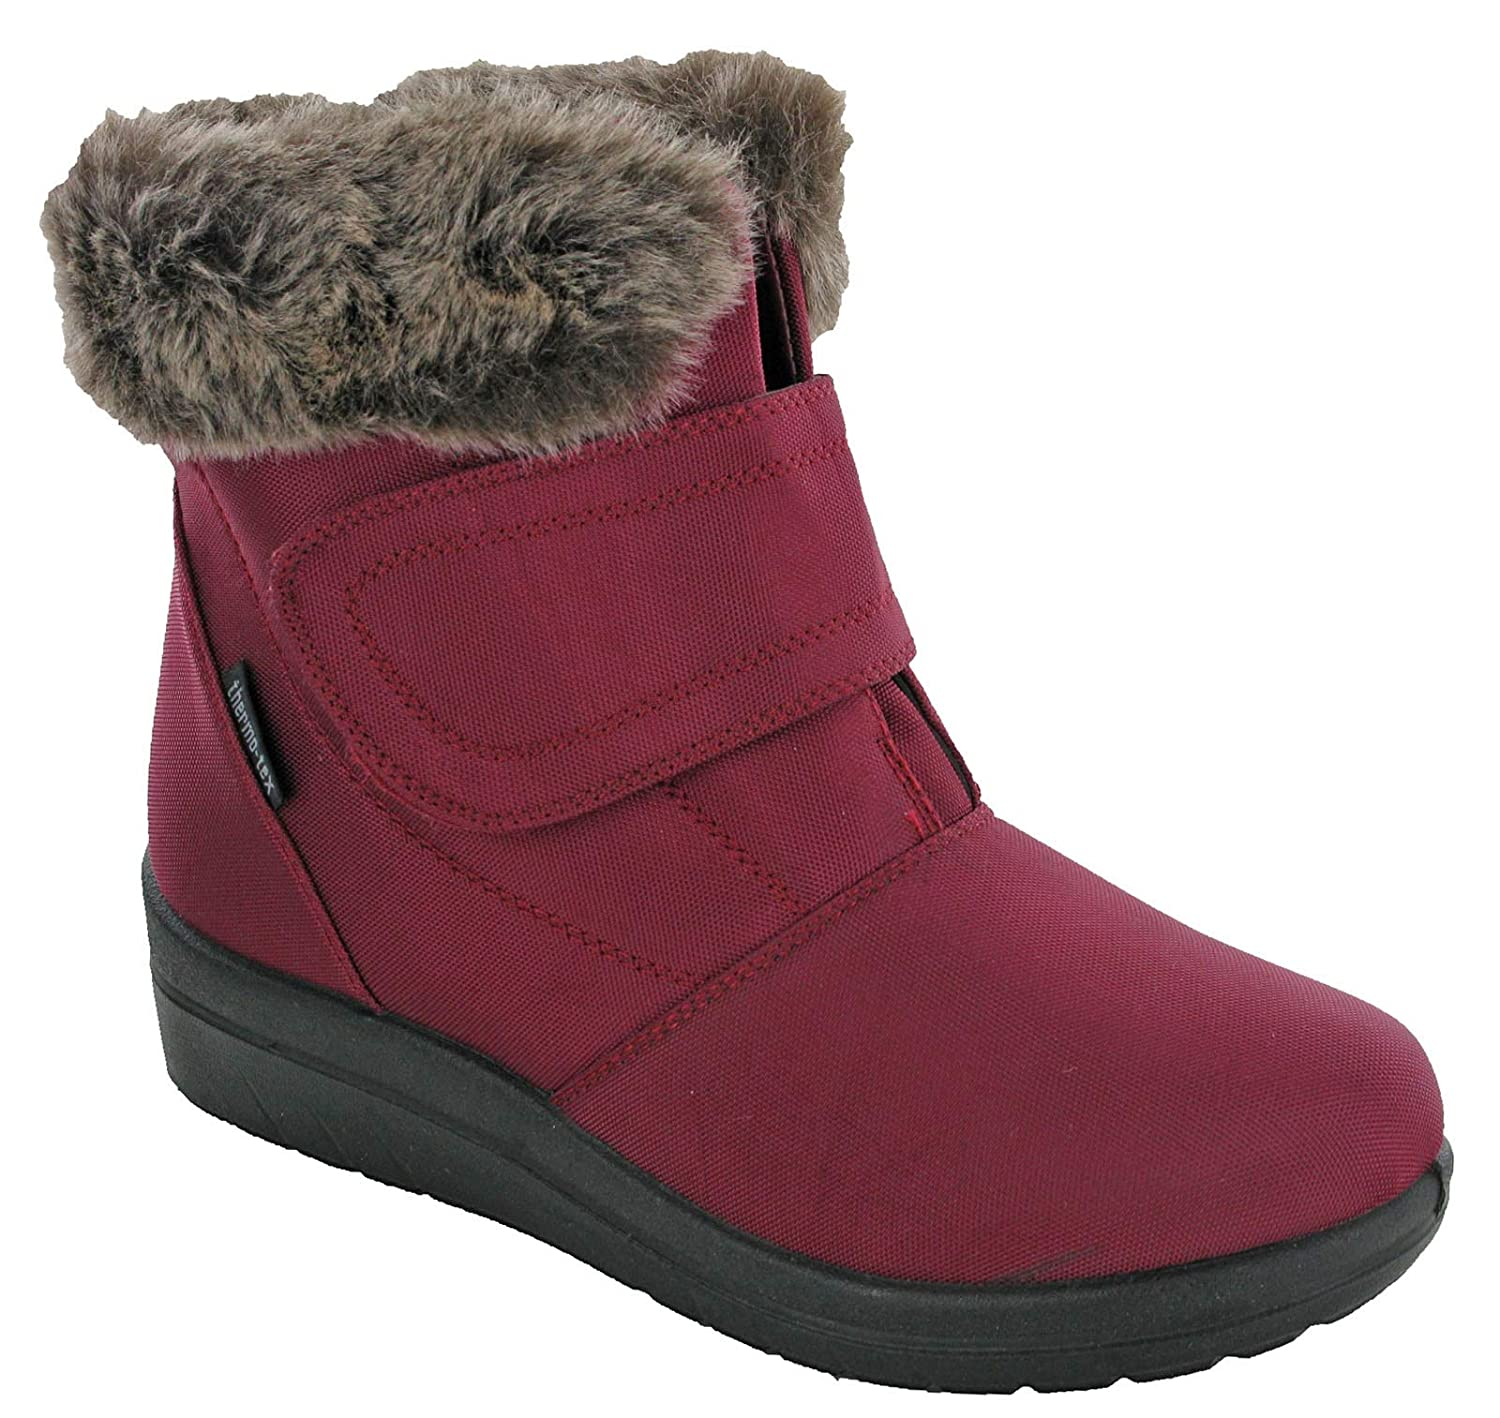 4cd700f2ecf49 Cushion Walk Velcro Boots Thermo-Tex Winter Warm Lined Fur Ankle Shoes